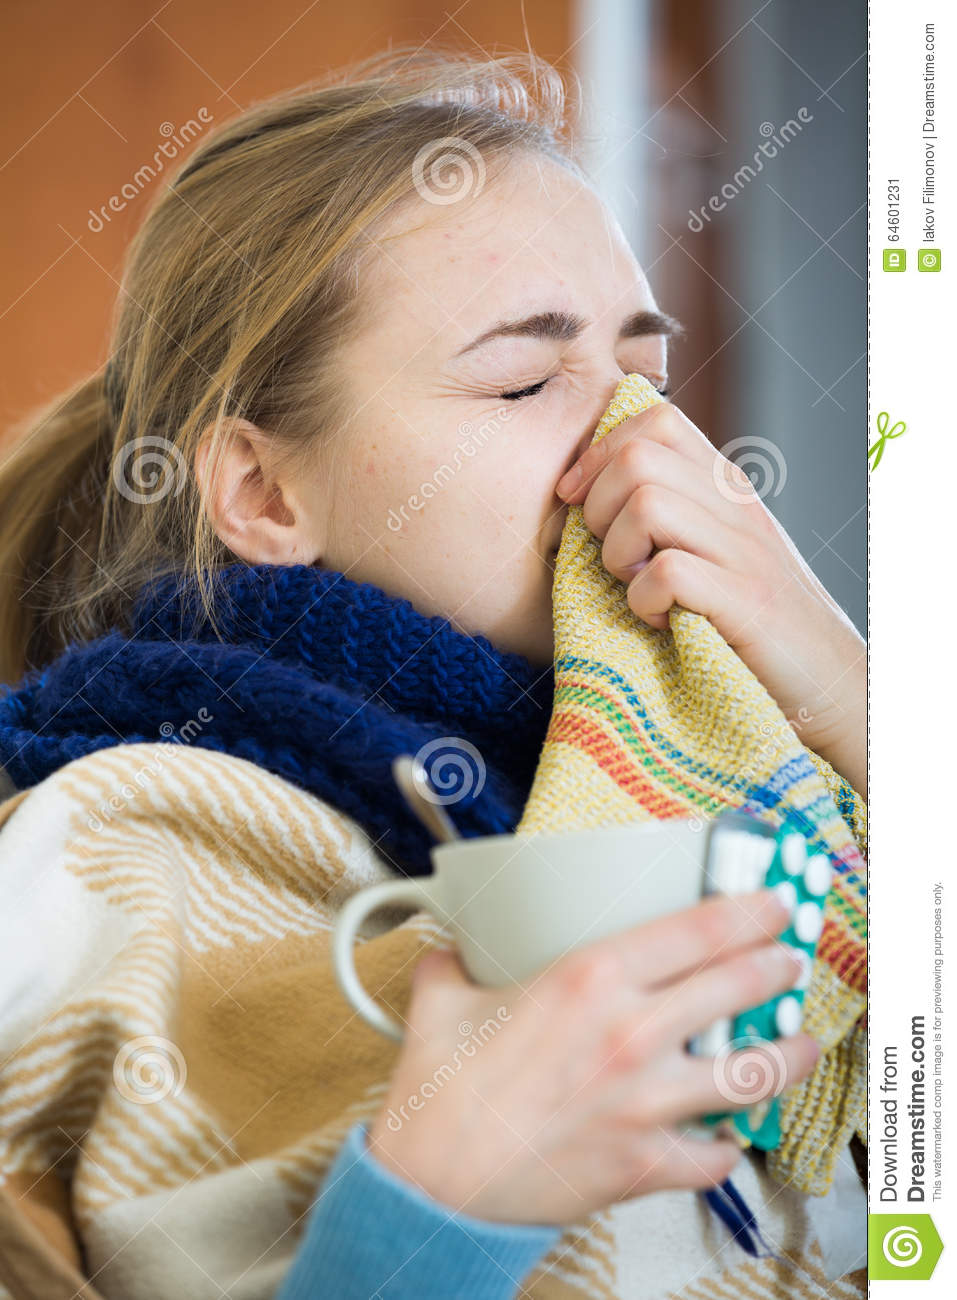 how to clear a stuffy nose from a cold